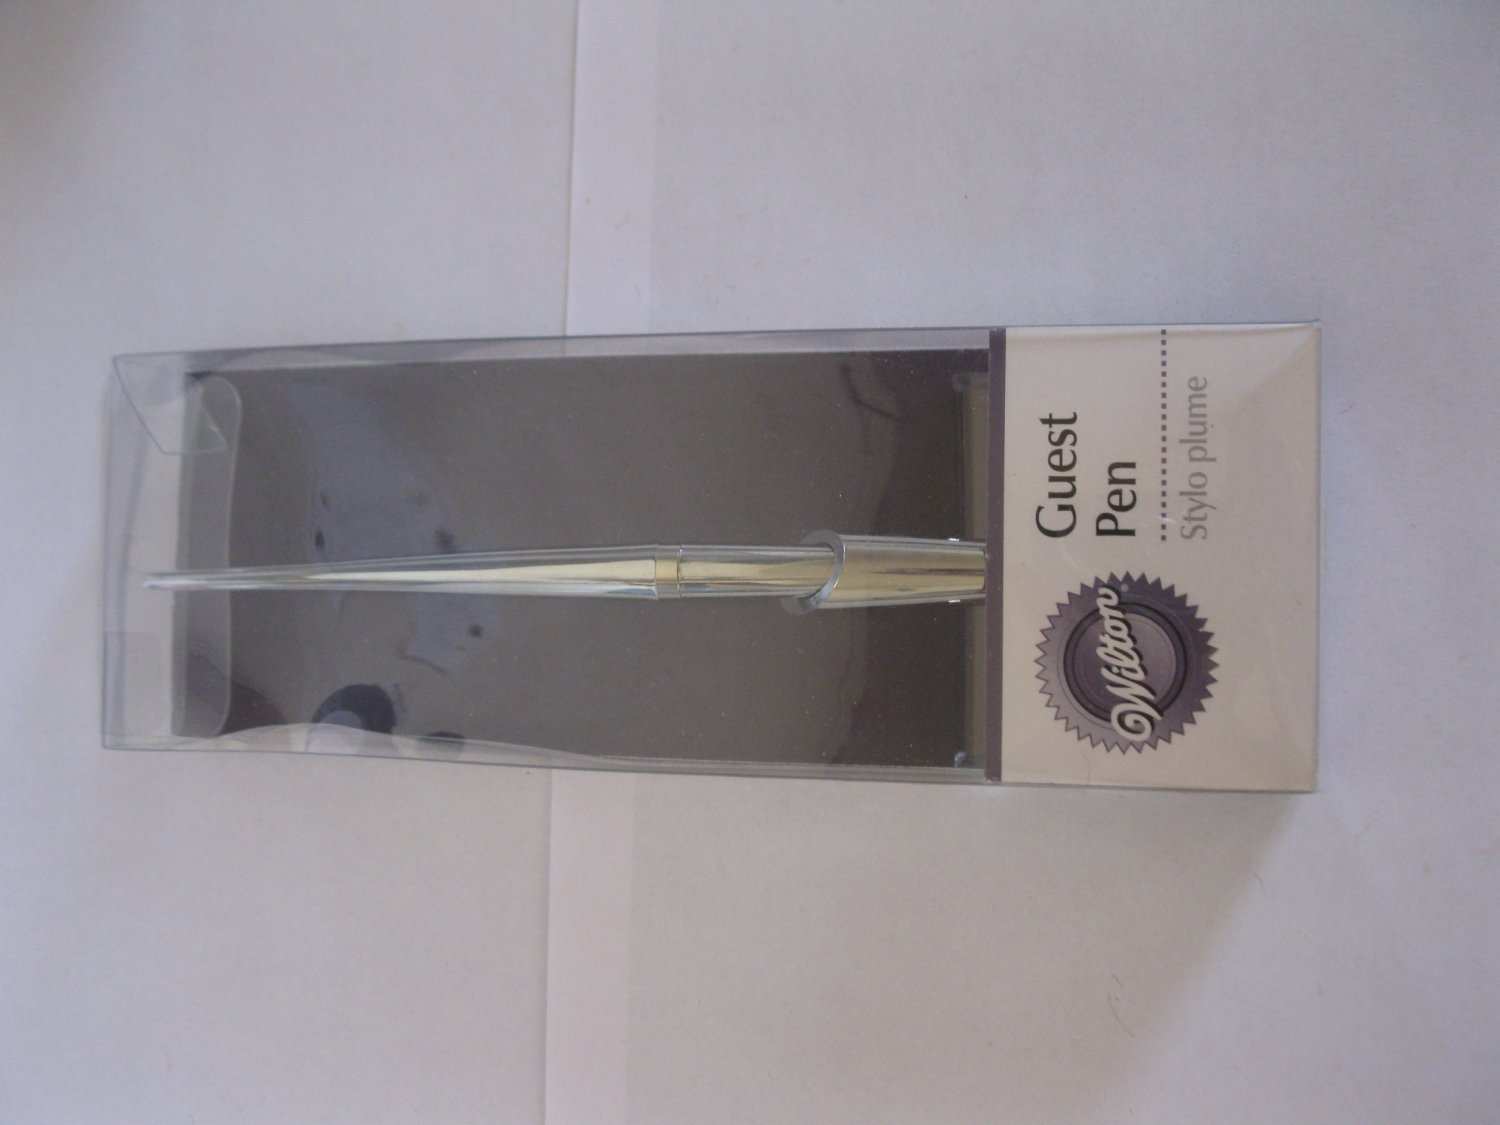 Brand New Wilton Guest Pen on stand - perfect for offices or ceremonies